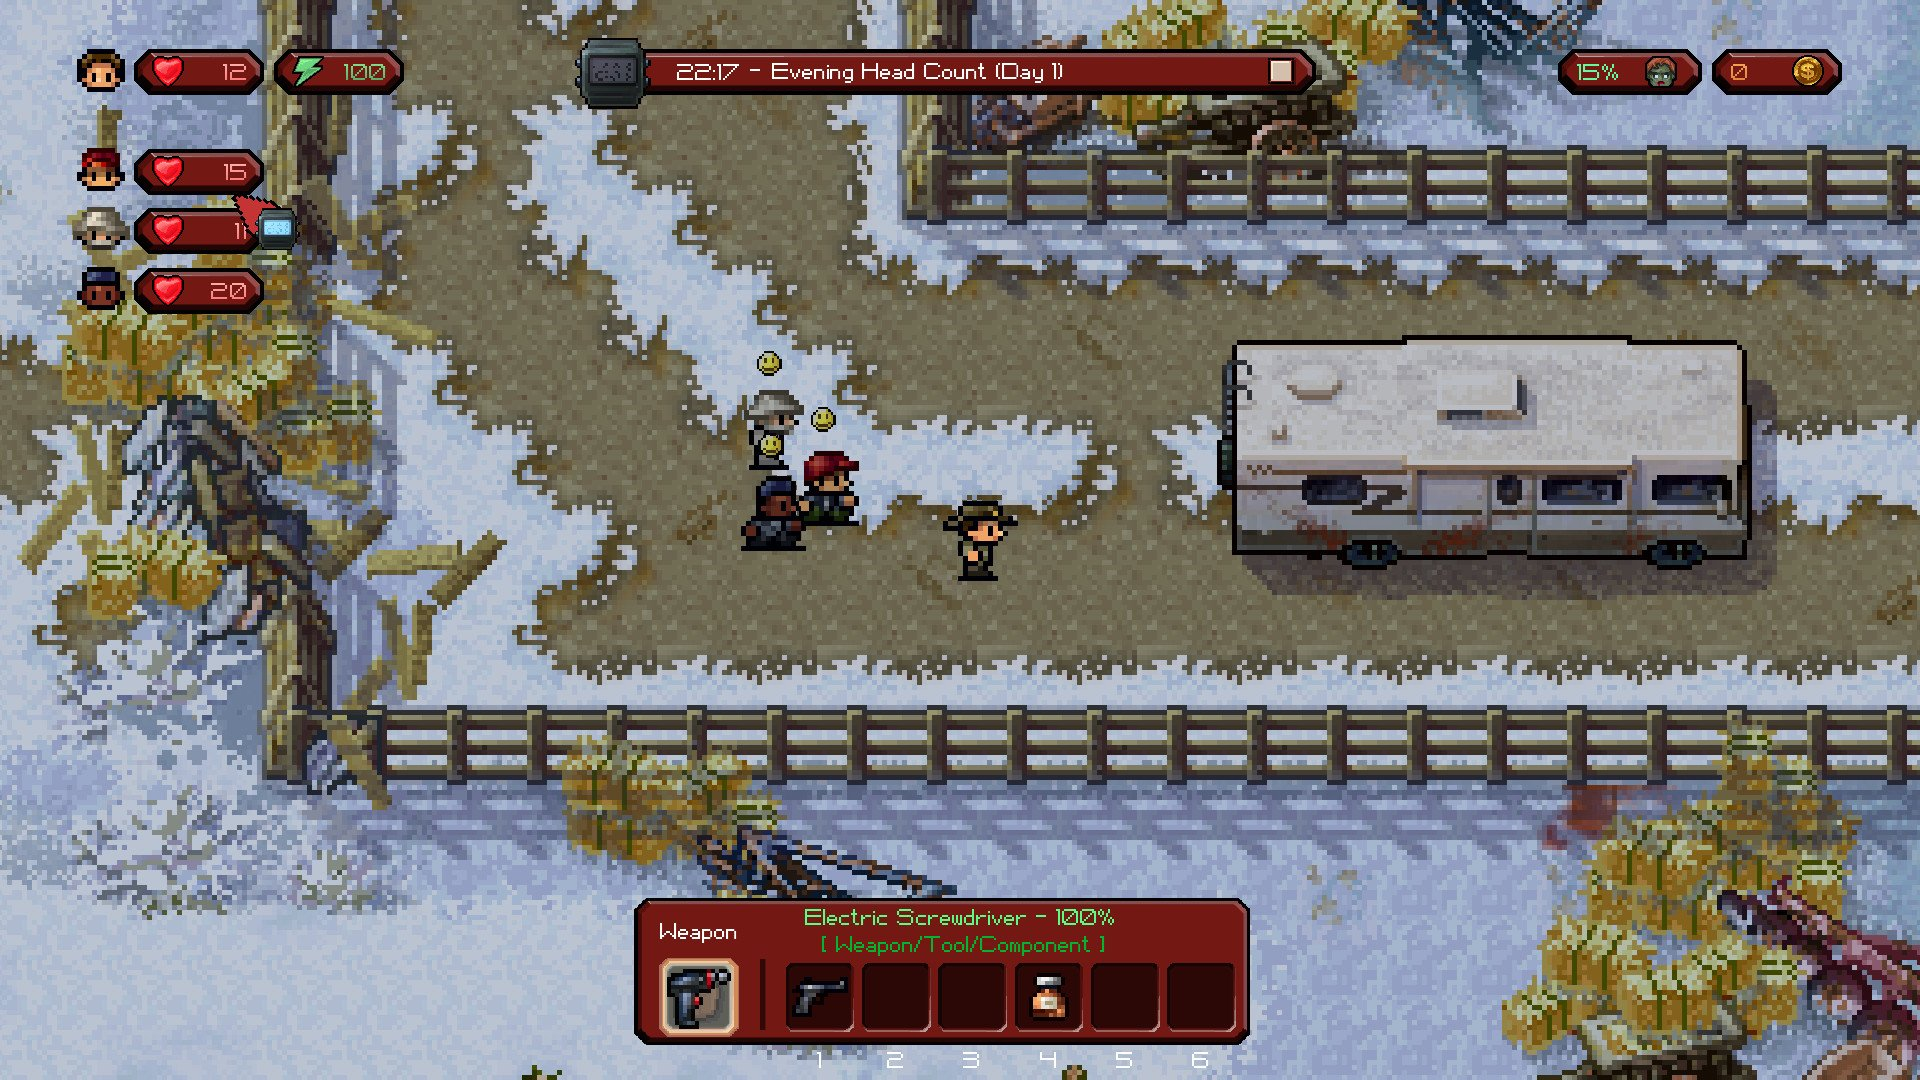 The Escapists: The Walking Dead game image